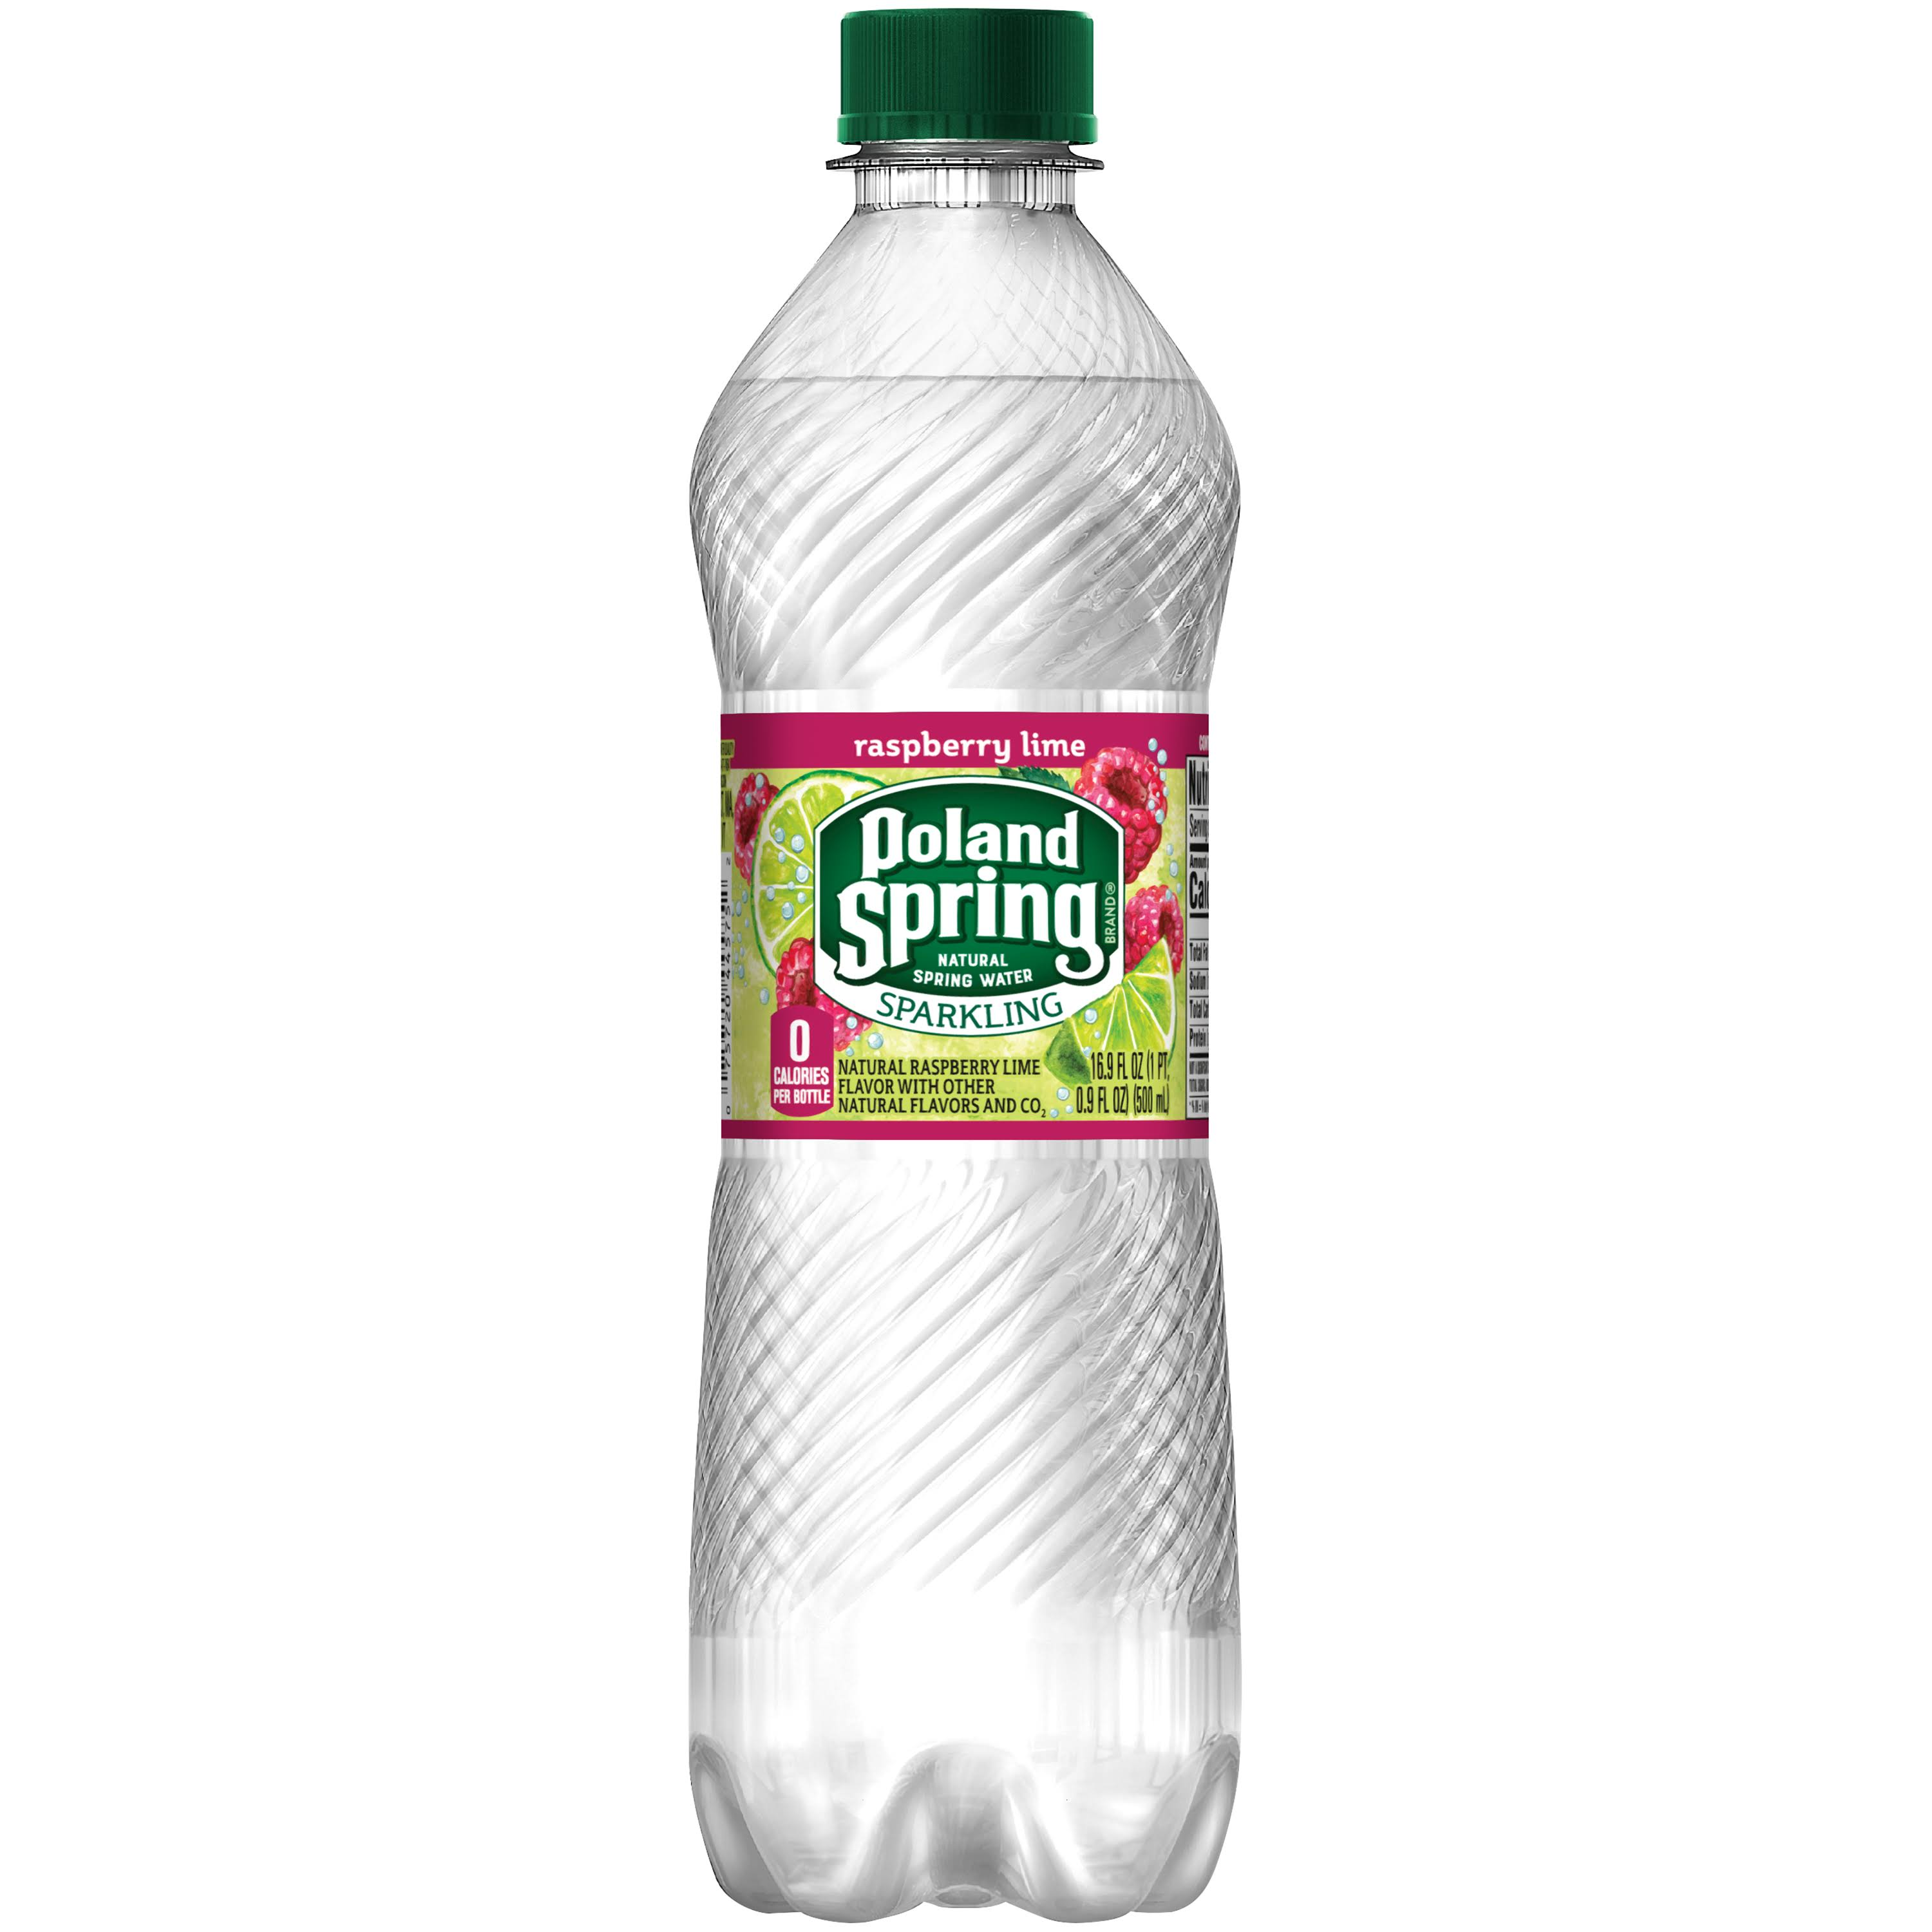 Poland Spring Sparkling Natural Spring Water - Raspberry Lime